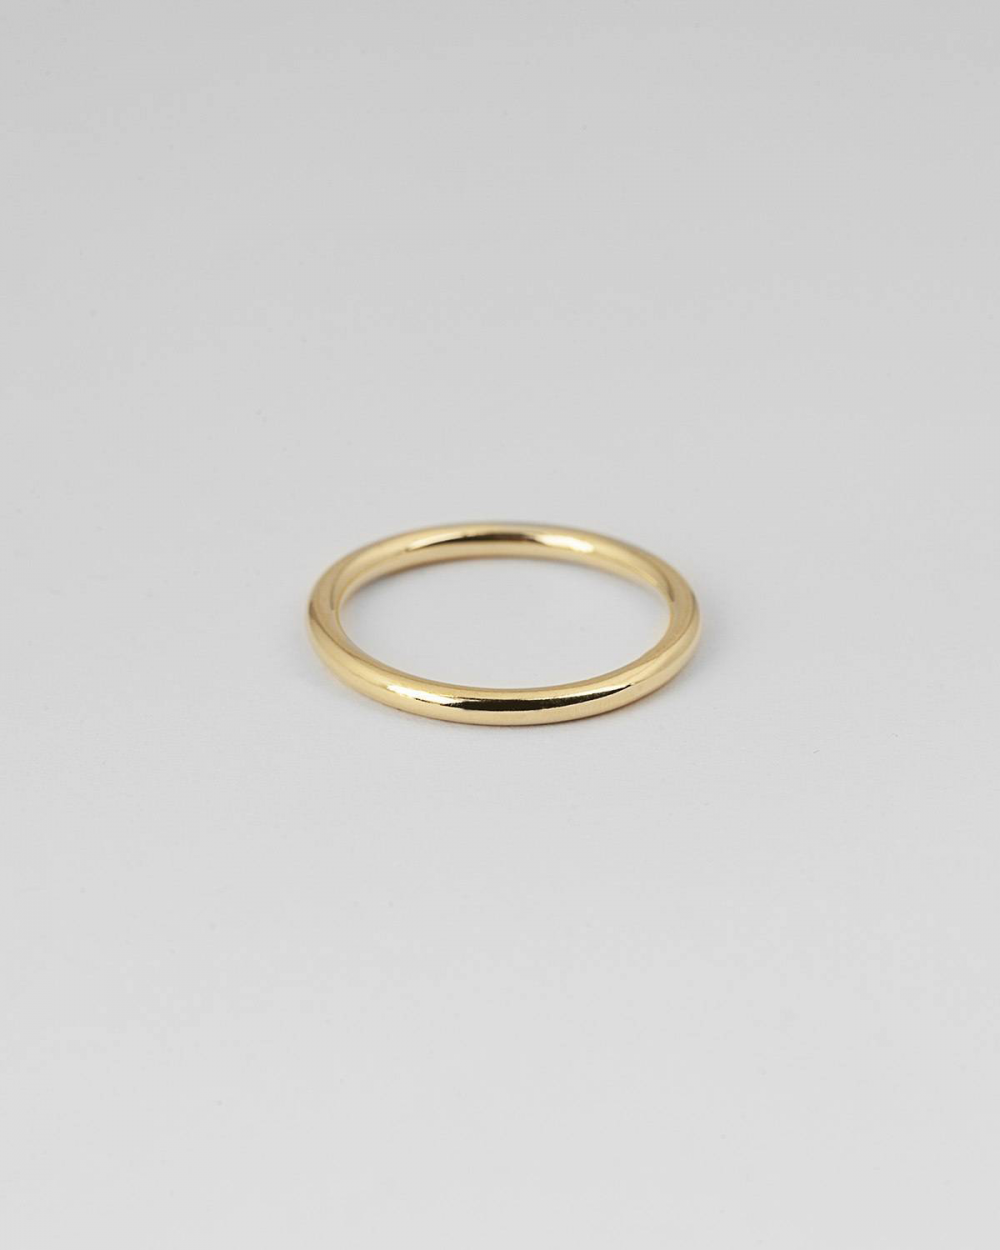 YELLOW GOLD BIG ROUND GUARD RING